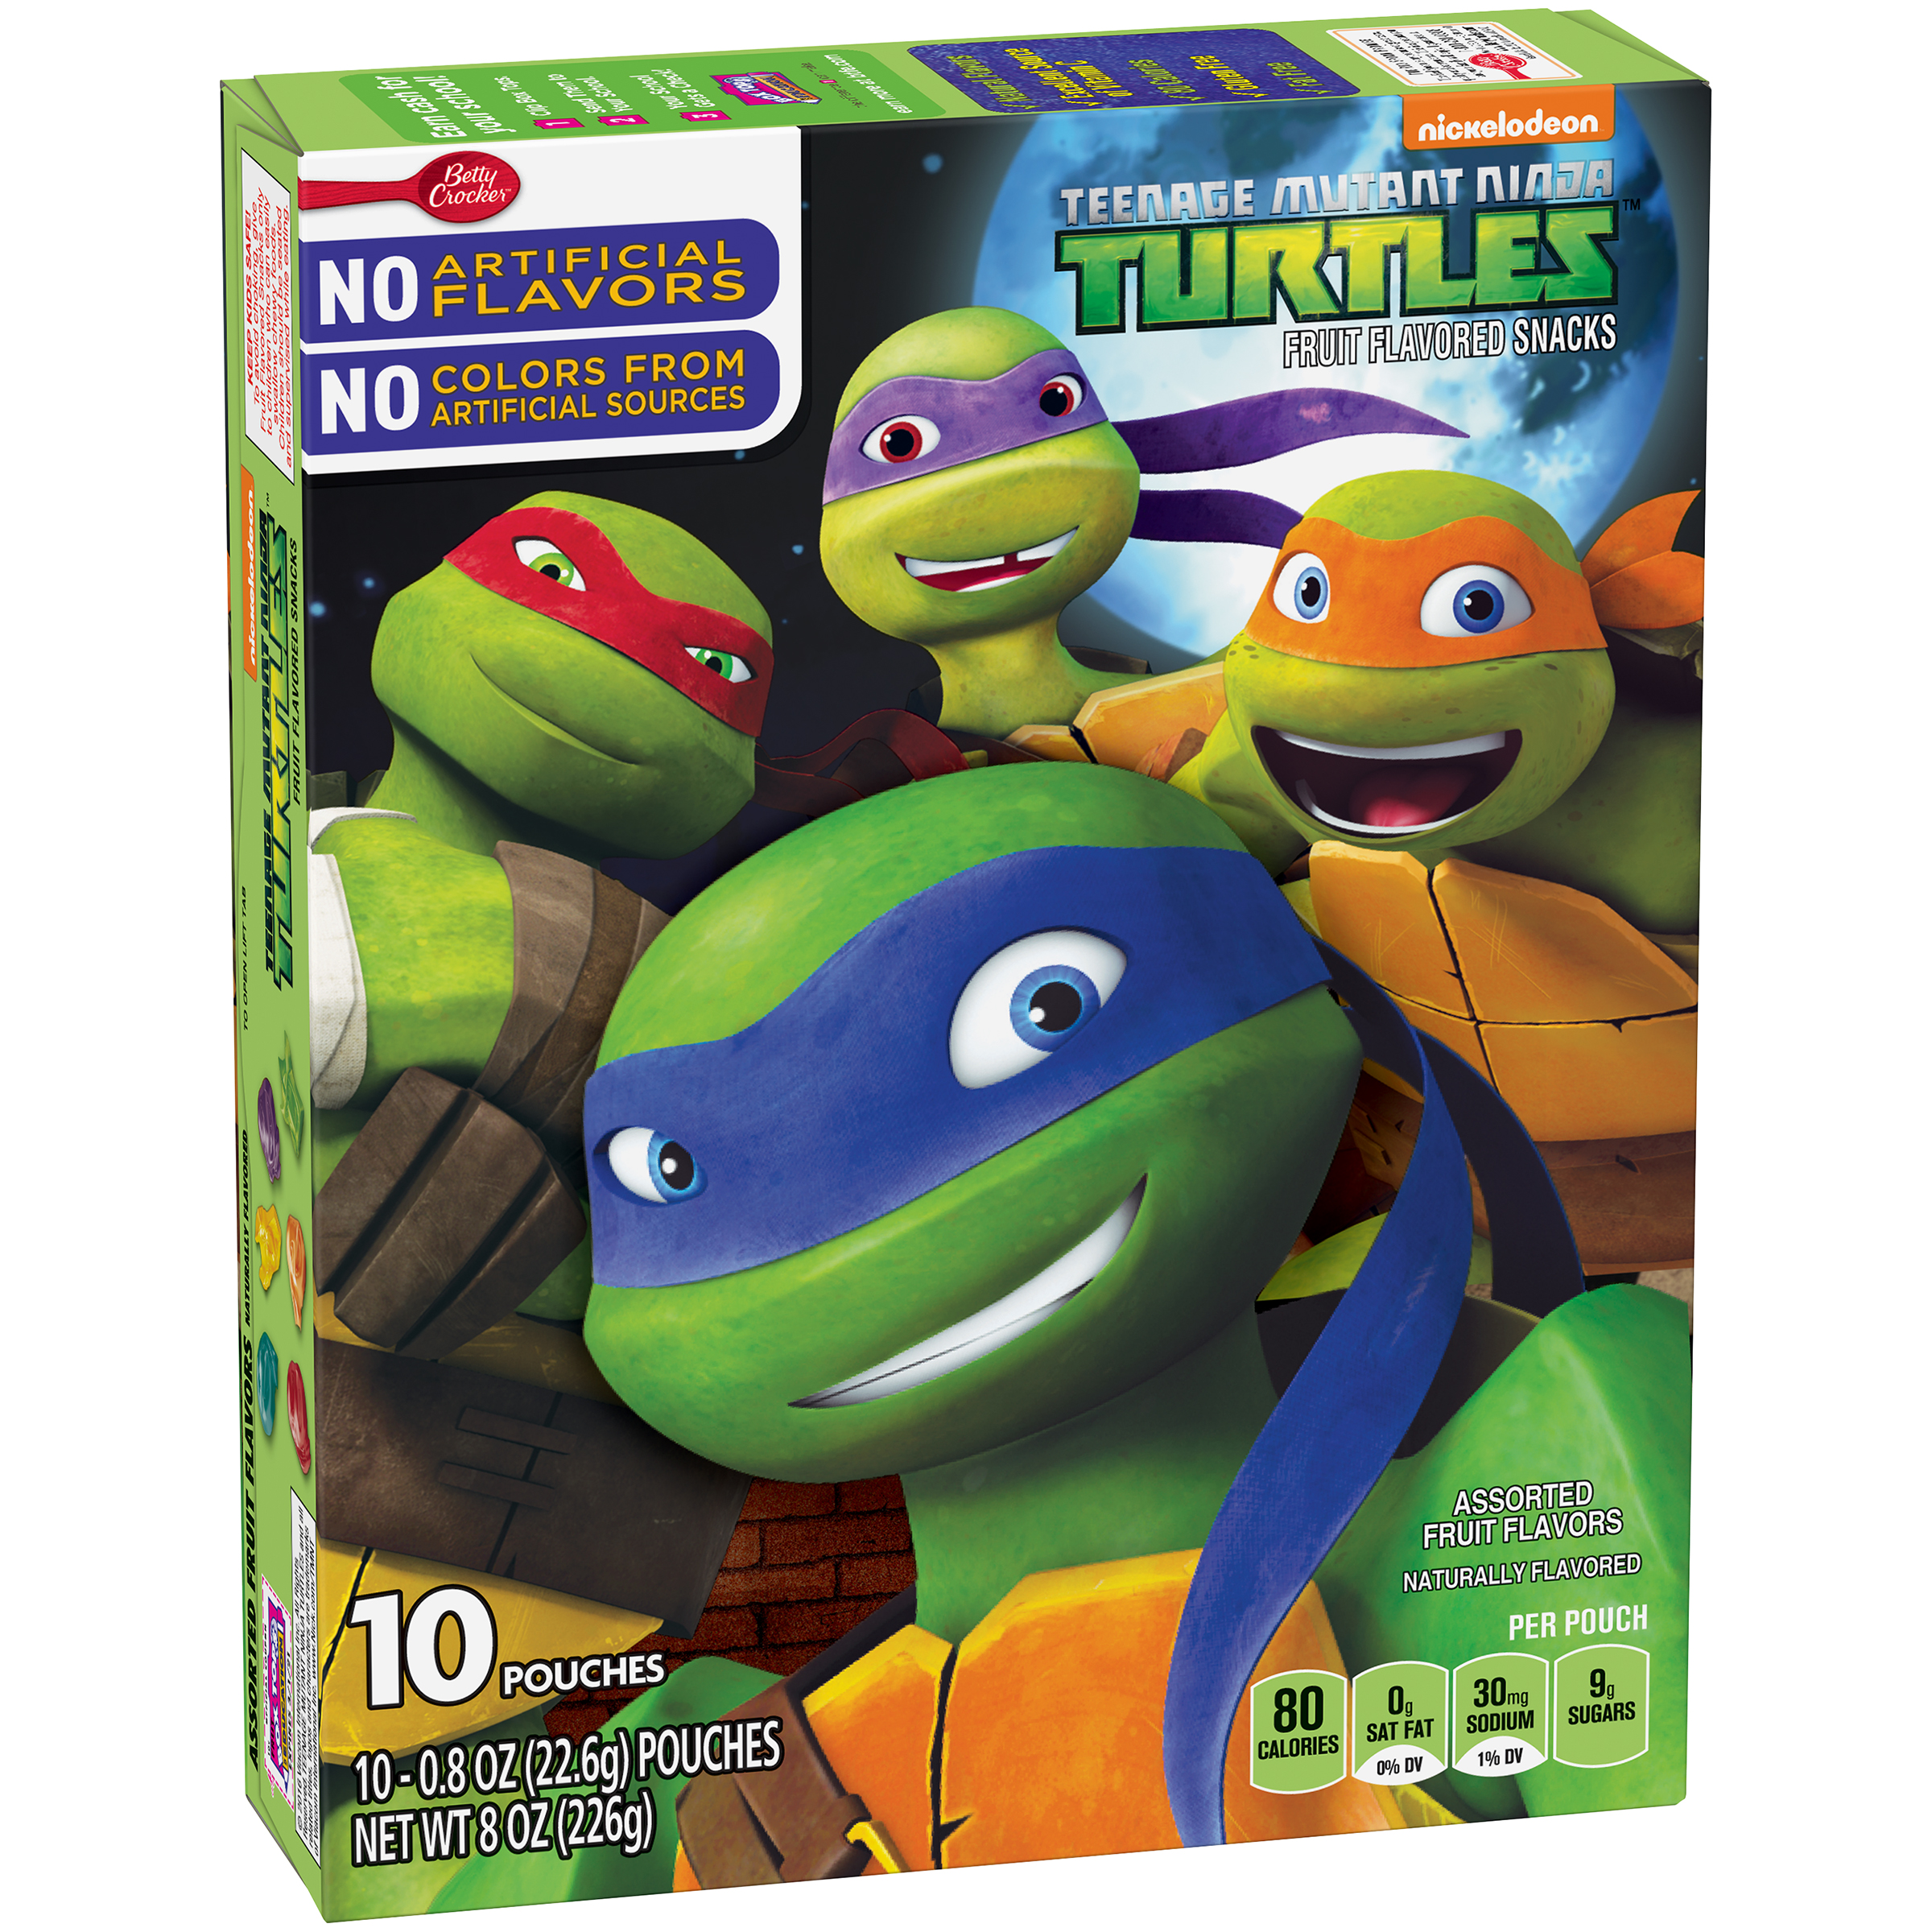 Betty Crocker® Teenage Mutant Ninja Turtles Fruit Flavored Snacks Assorted Flavors 10 - 0.8 oz Pouches